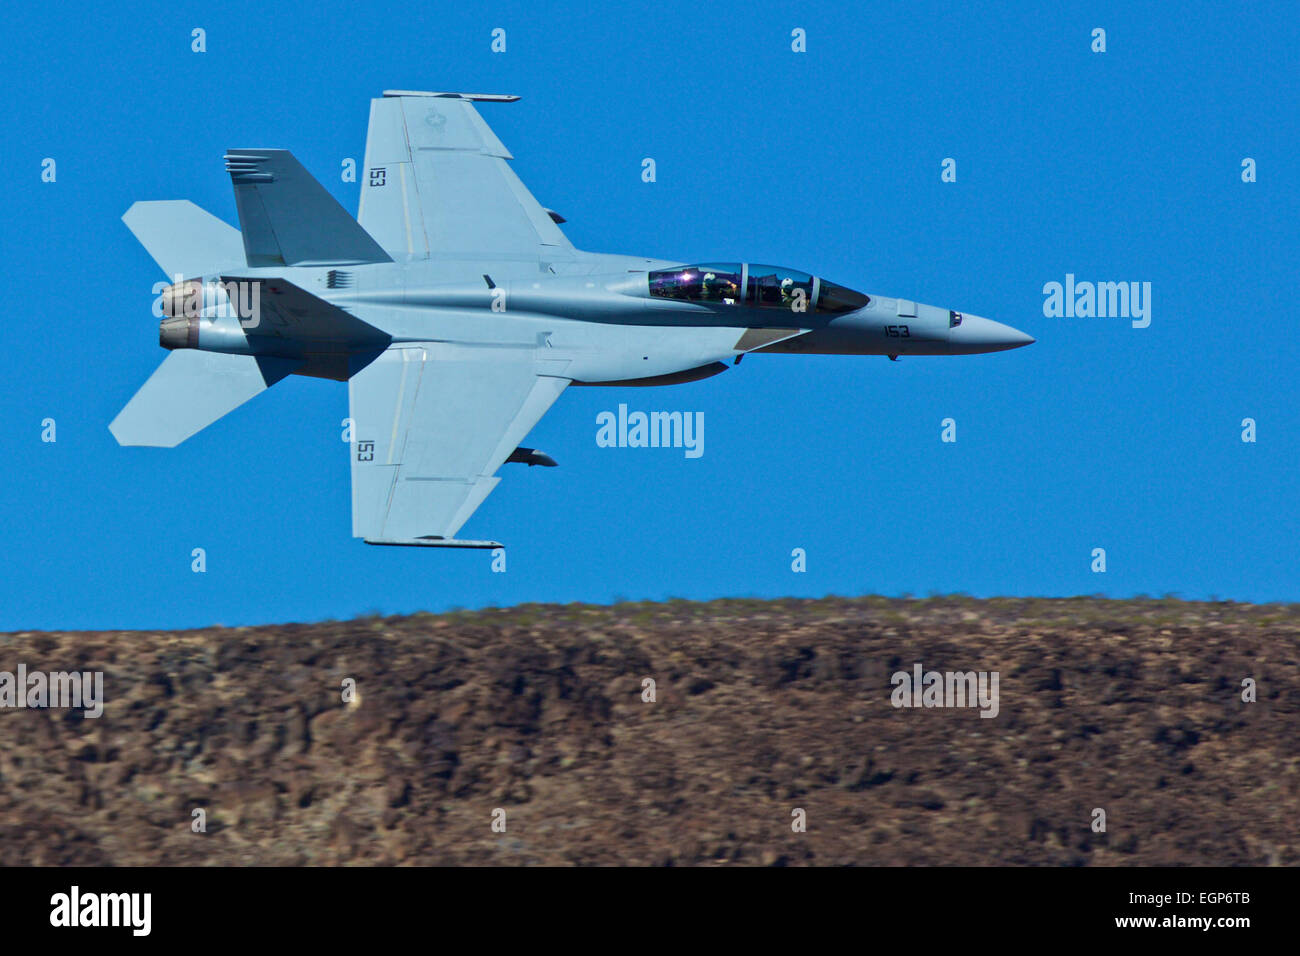 Close Up Topside View Of A US Navy F/A-18F Super Hornet Jet Fighter Flying Along The Rim Of Rainbow Canyon, California. Stock Photo